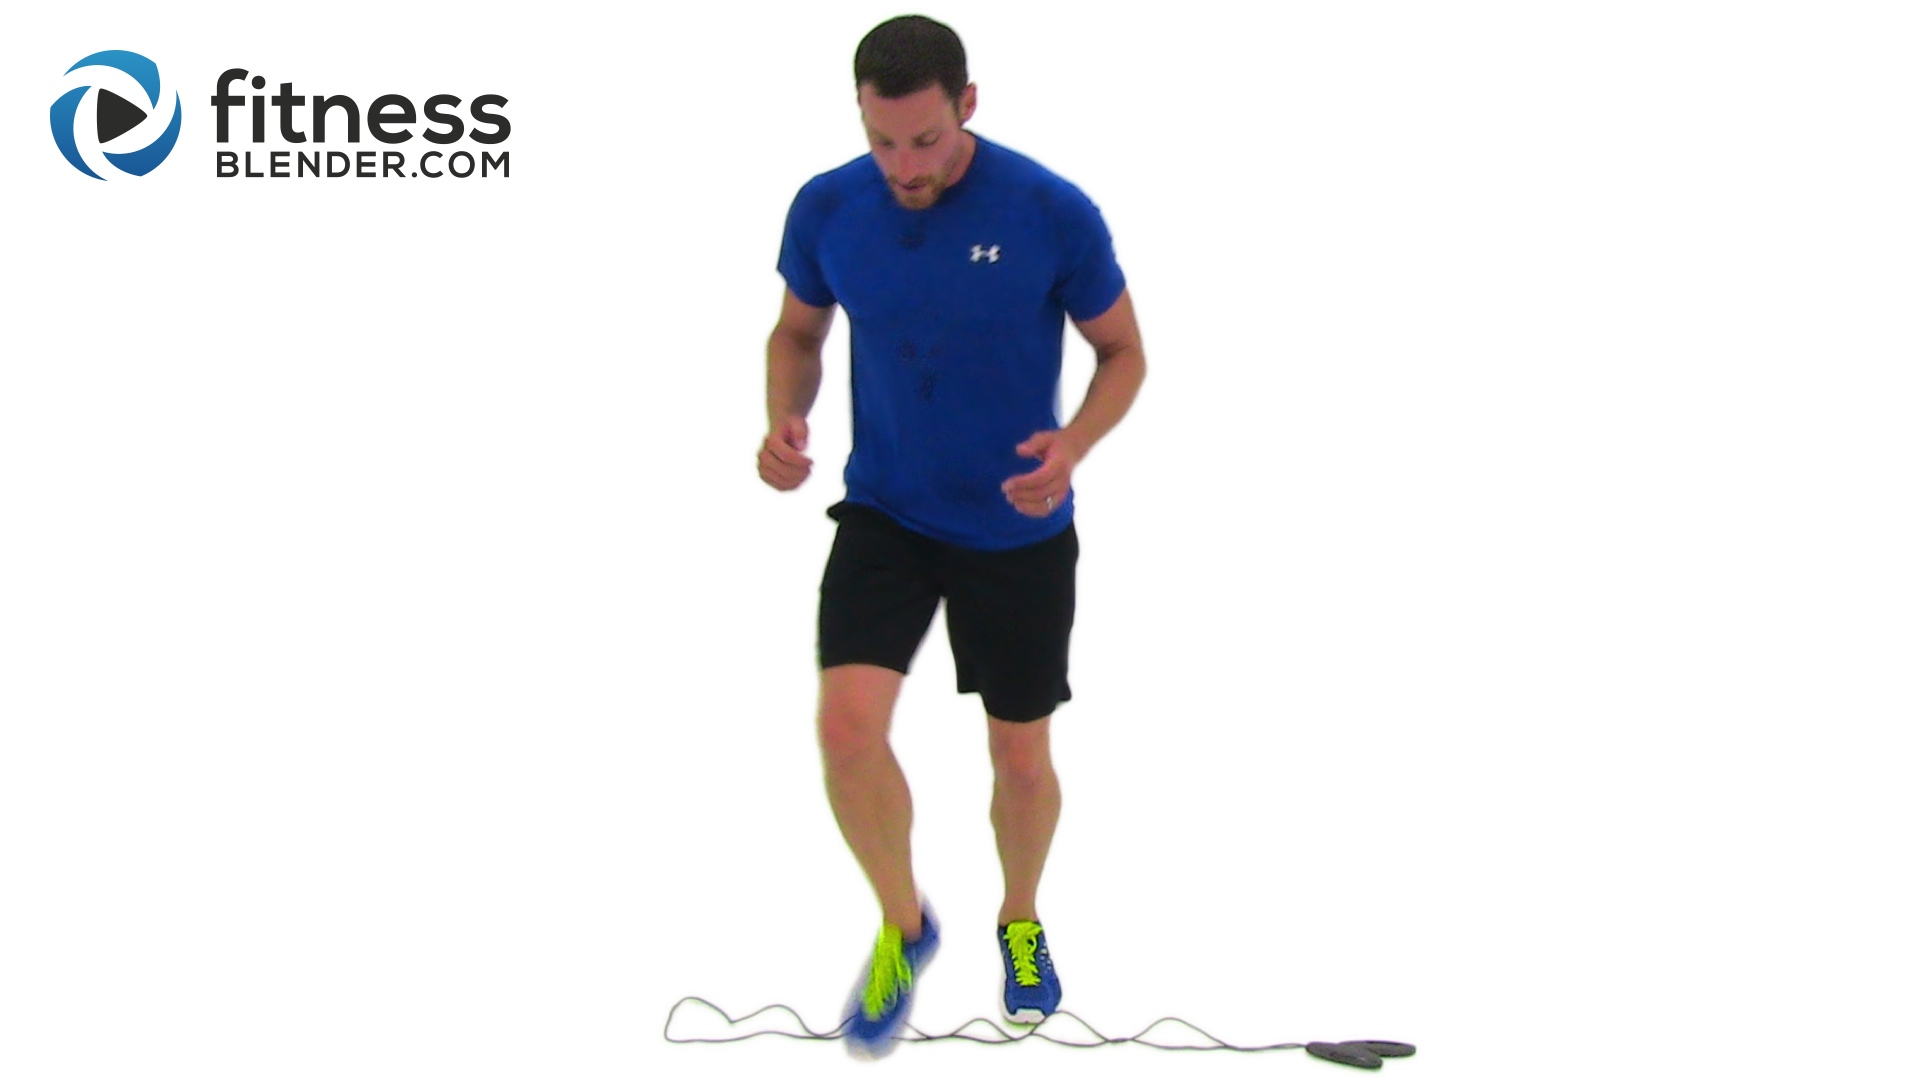 Power These Hiit Jump Rope Workouts Will Be Done At 120 Steps Per Minute We 39 Ve Included A Set Of Moves For You Below Once Get Proficient